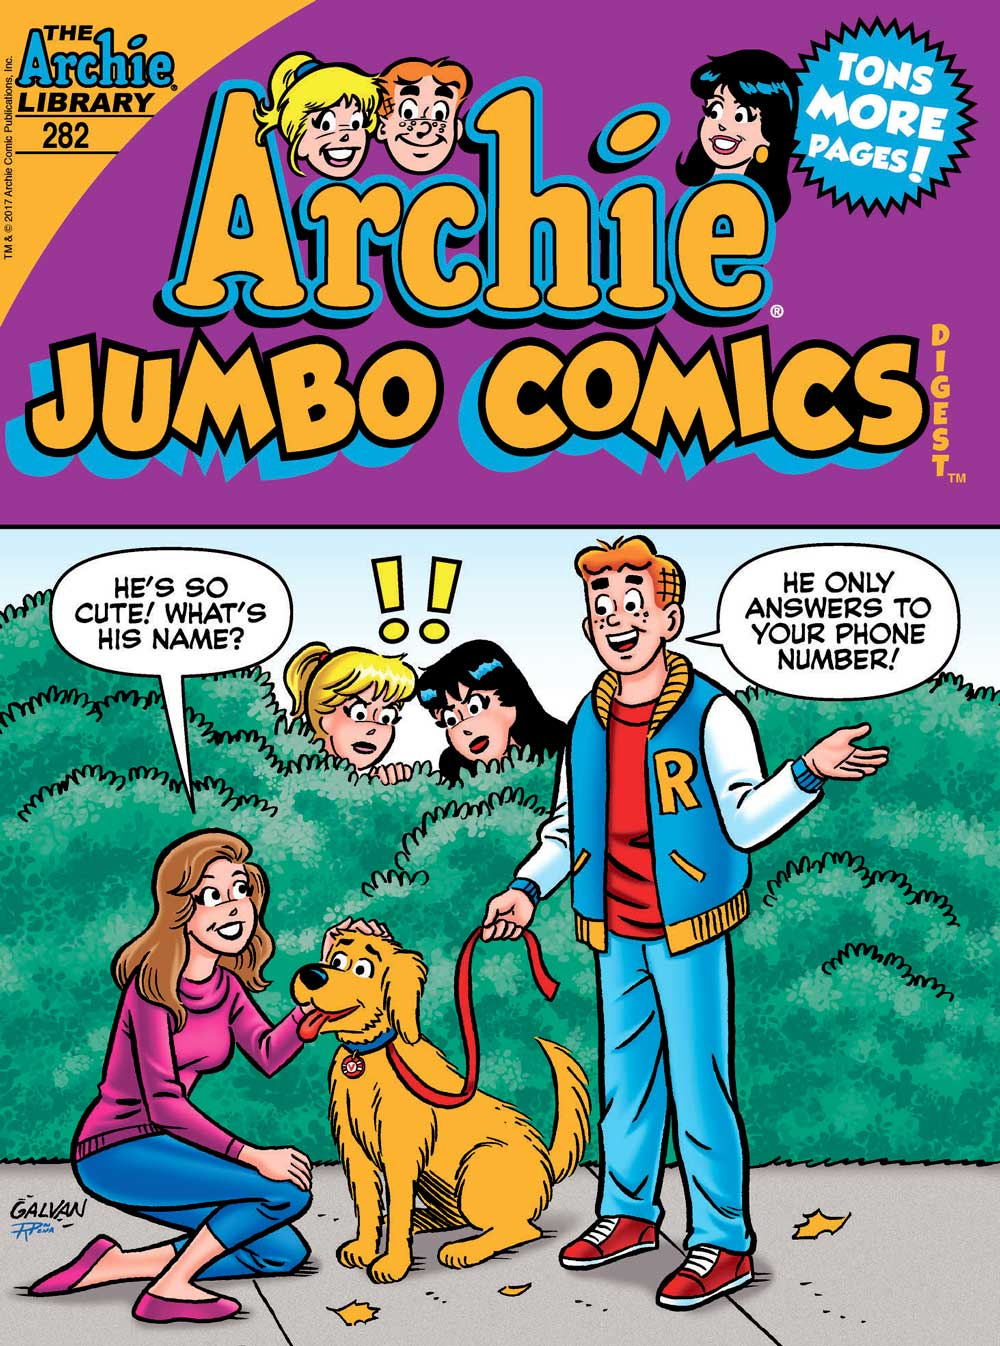 A new story in the classic Archie style kicks off every Archie